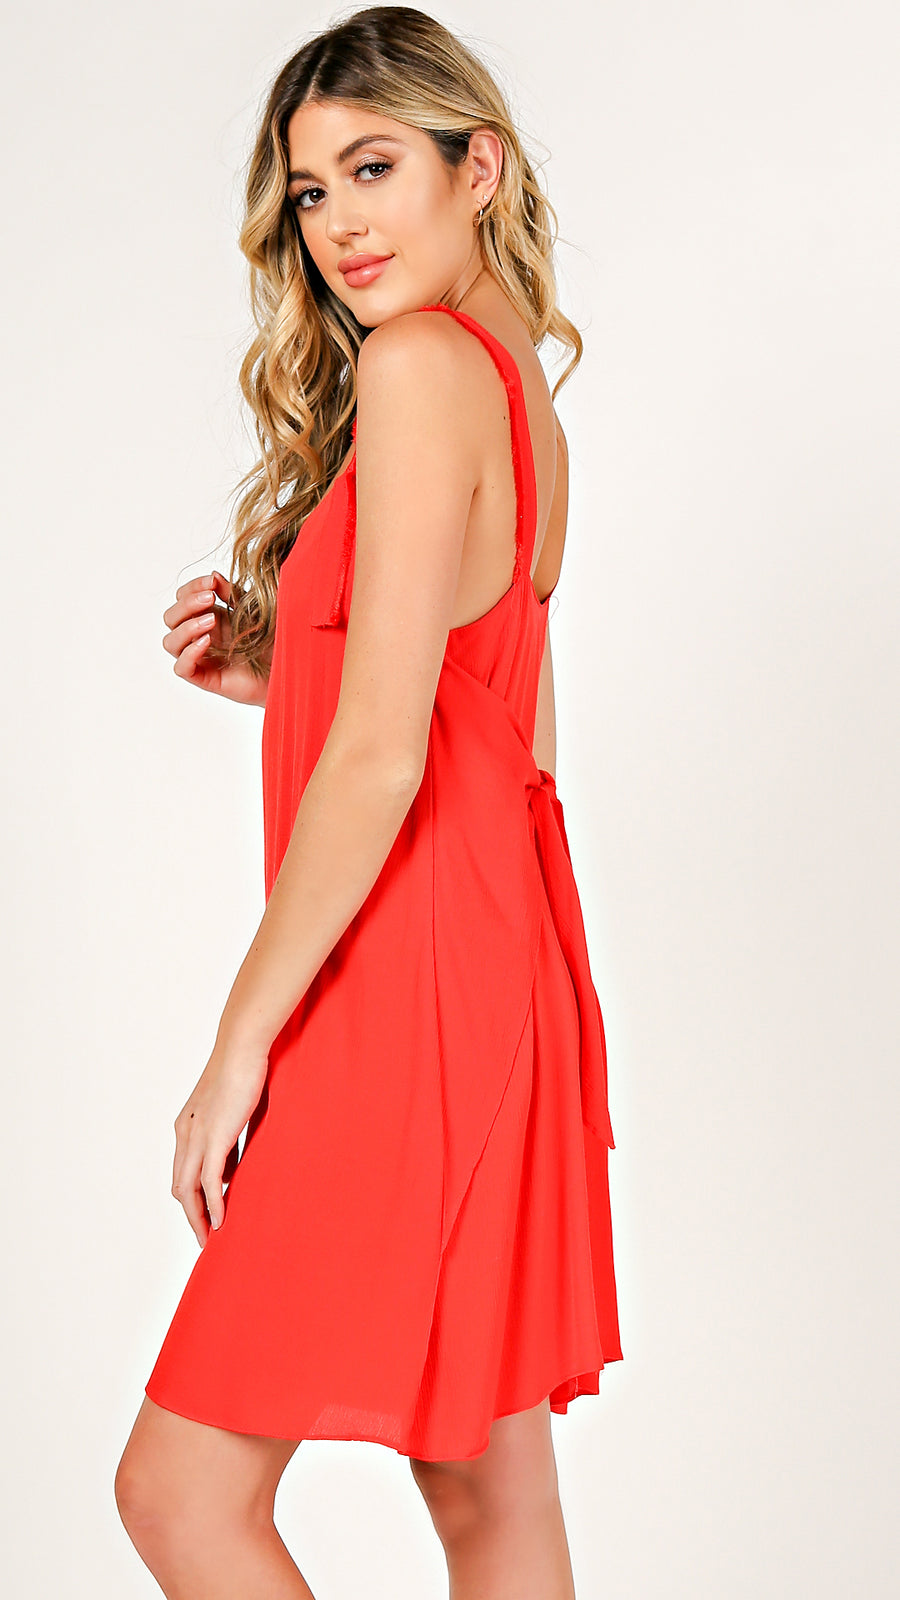 Frayed Detail Tie Dress - ANGL